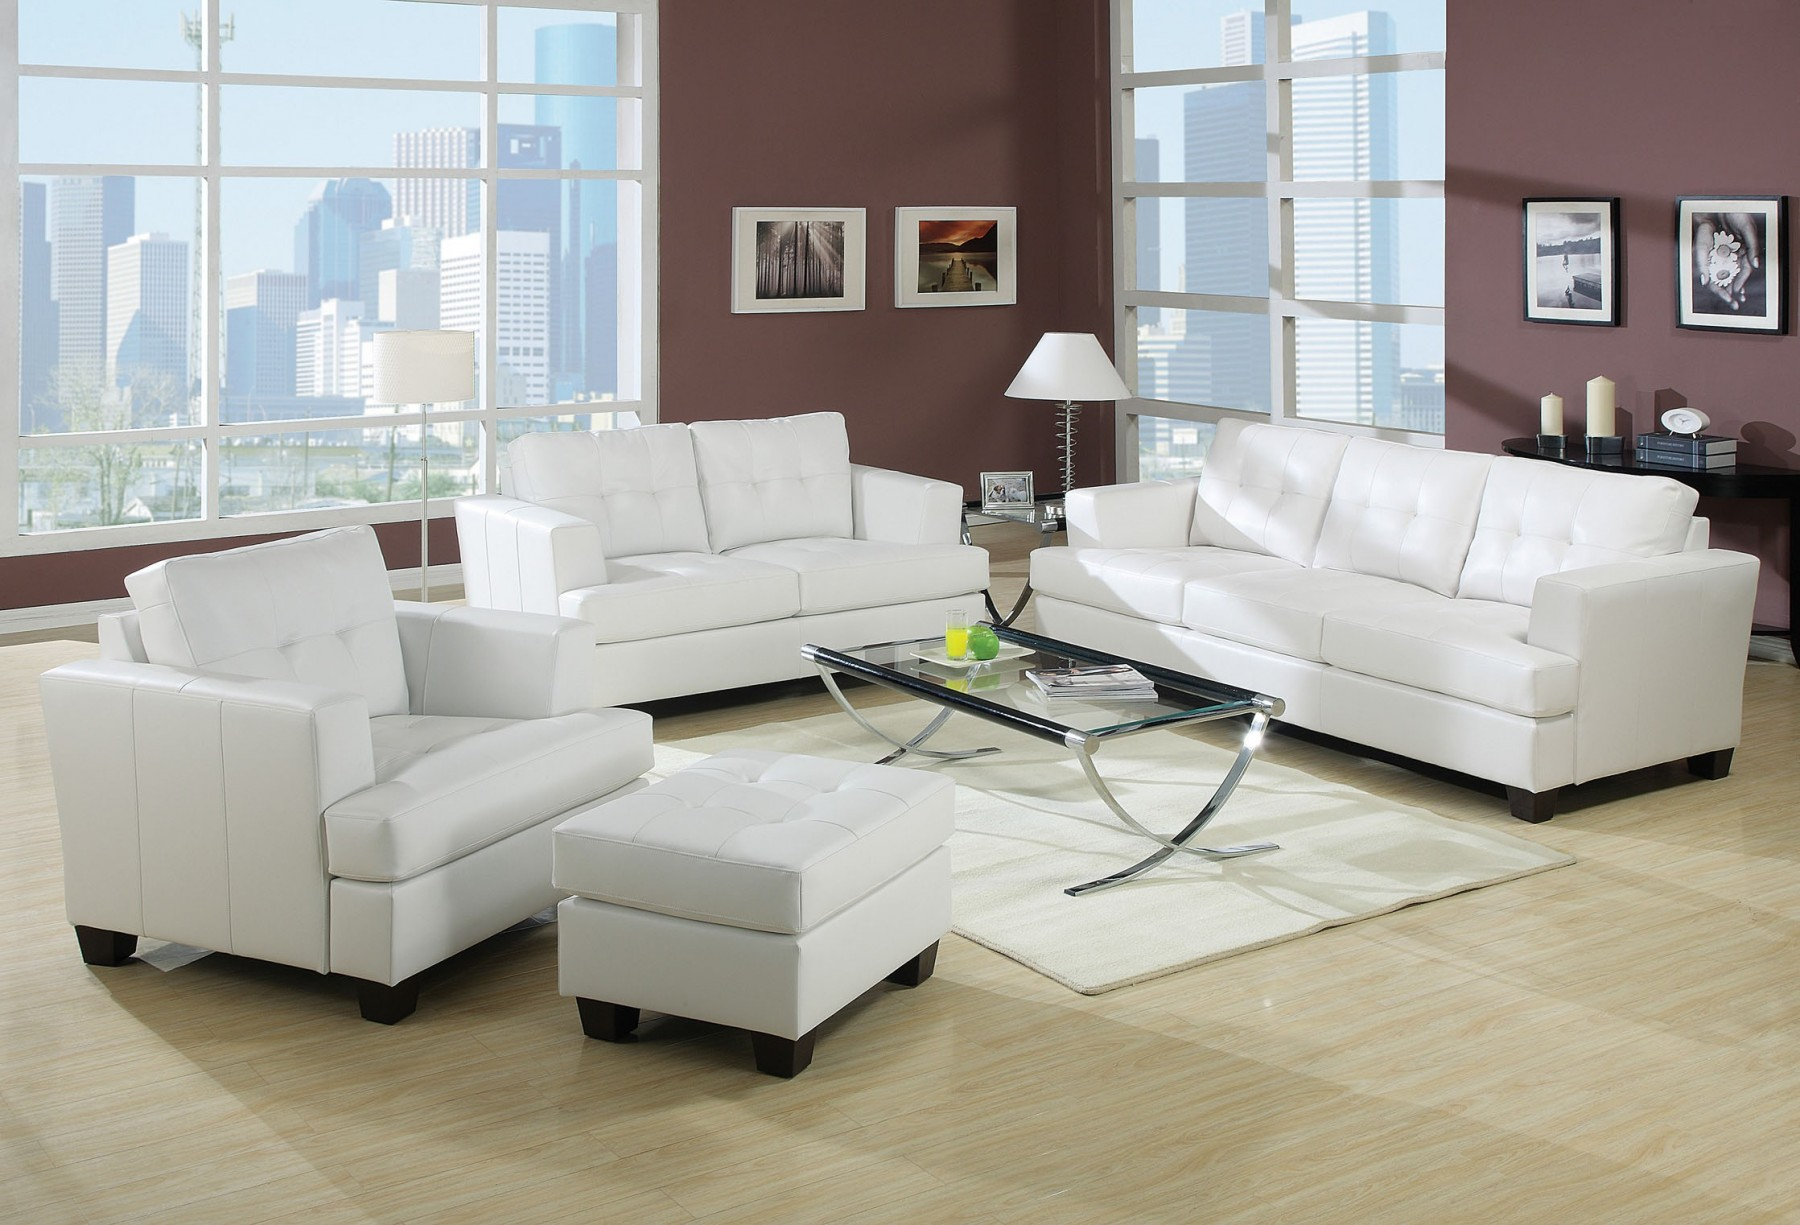 Leather Living Room Furnitures Acme Platinum 2pc Living Room Furniture White Bonded Leather Sofa Loveseat